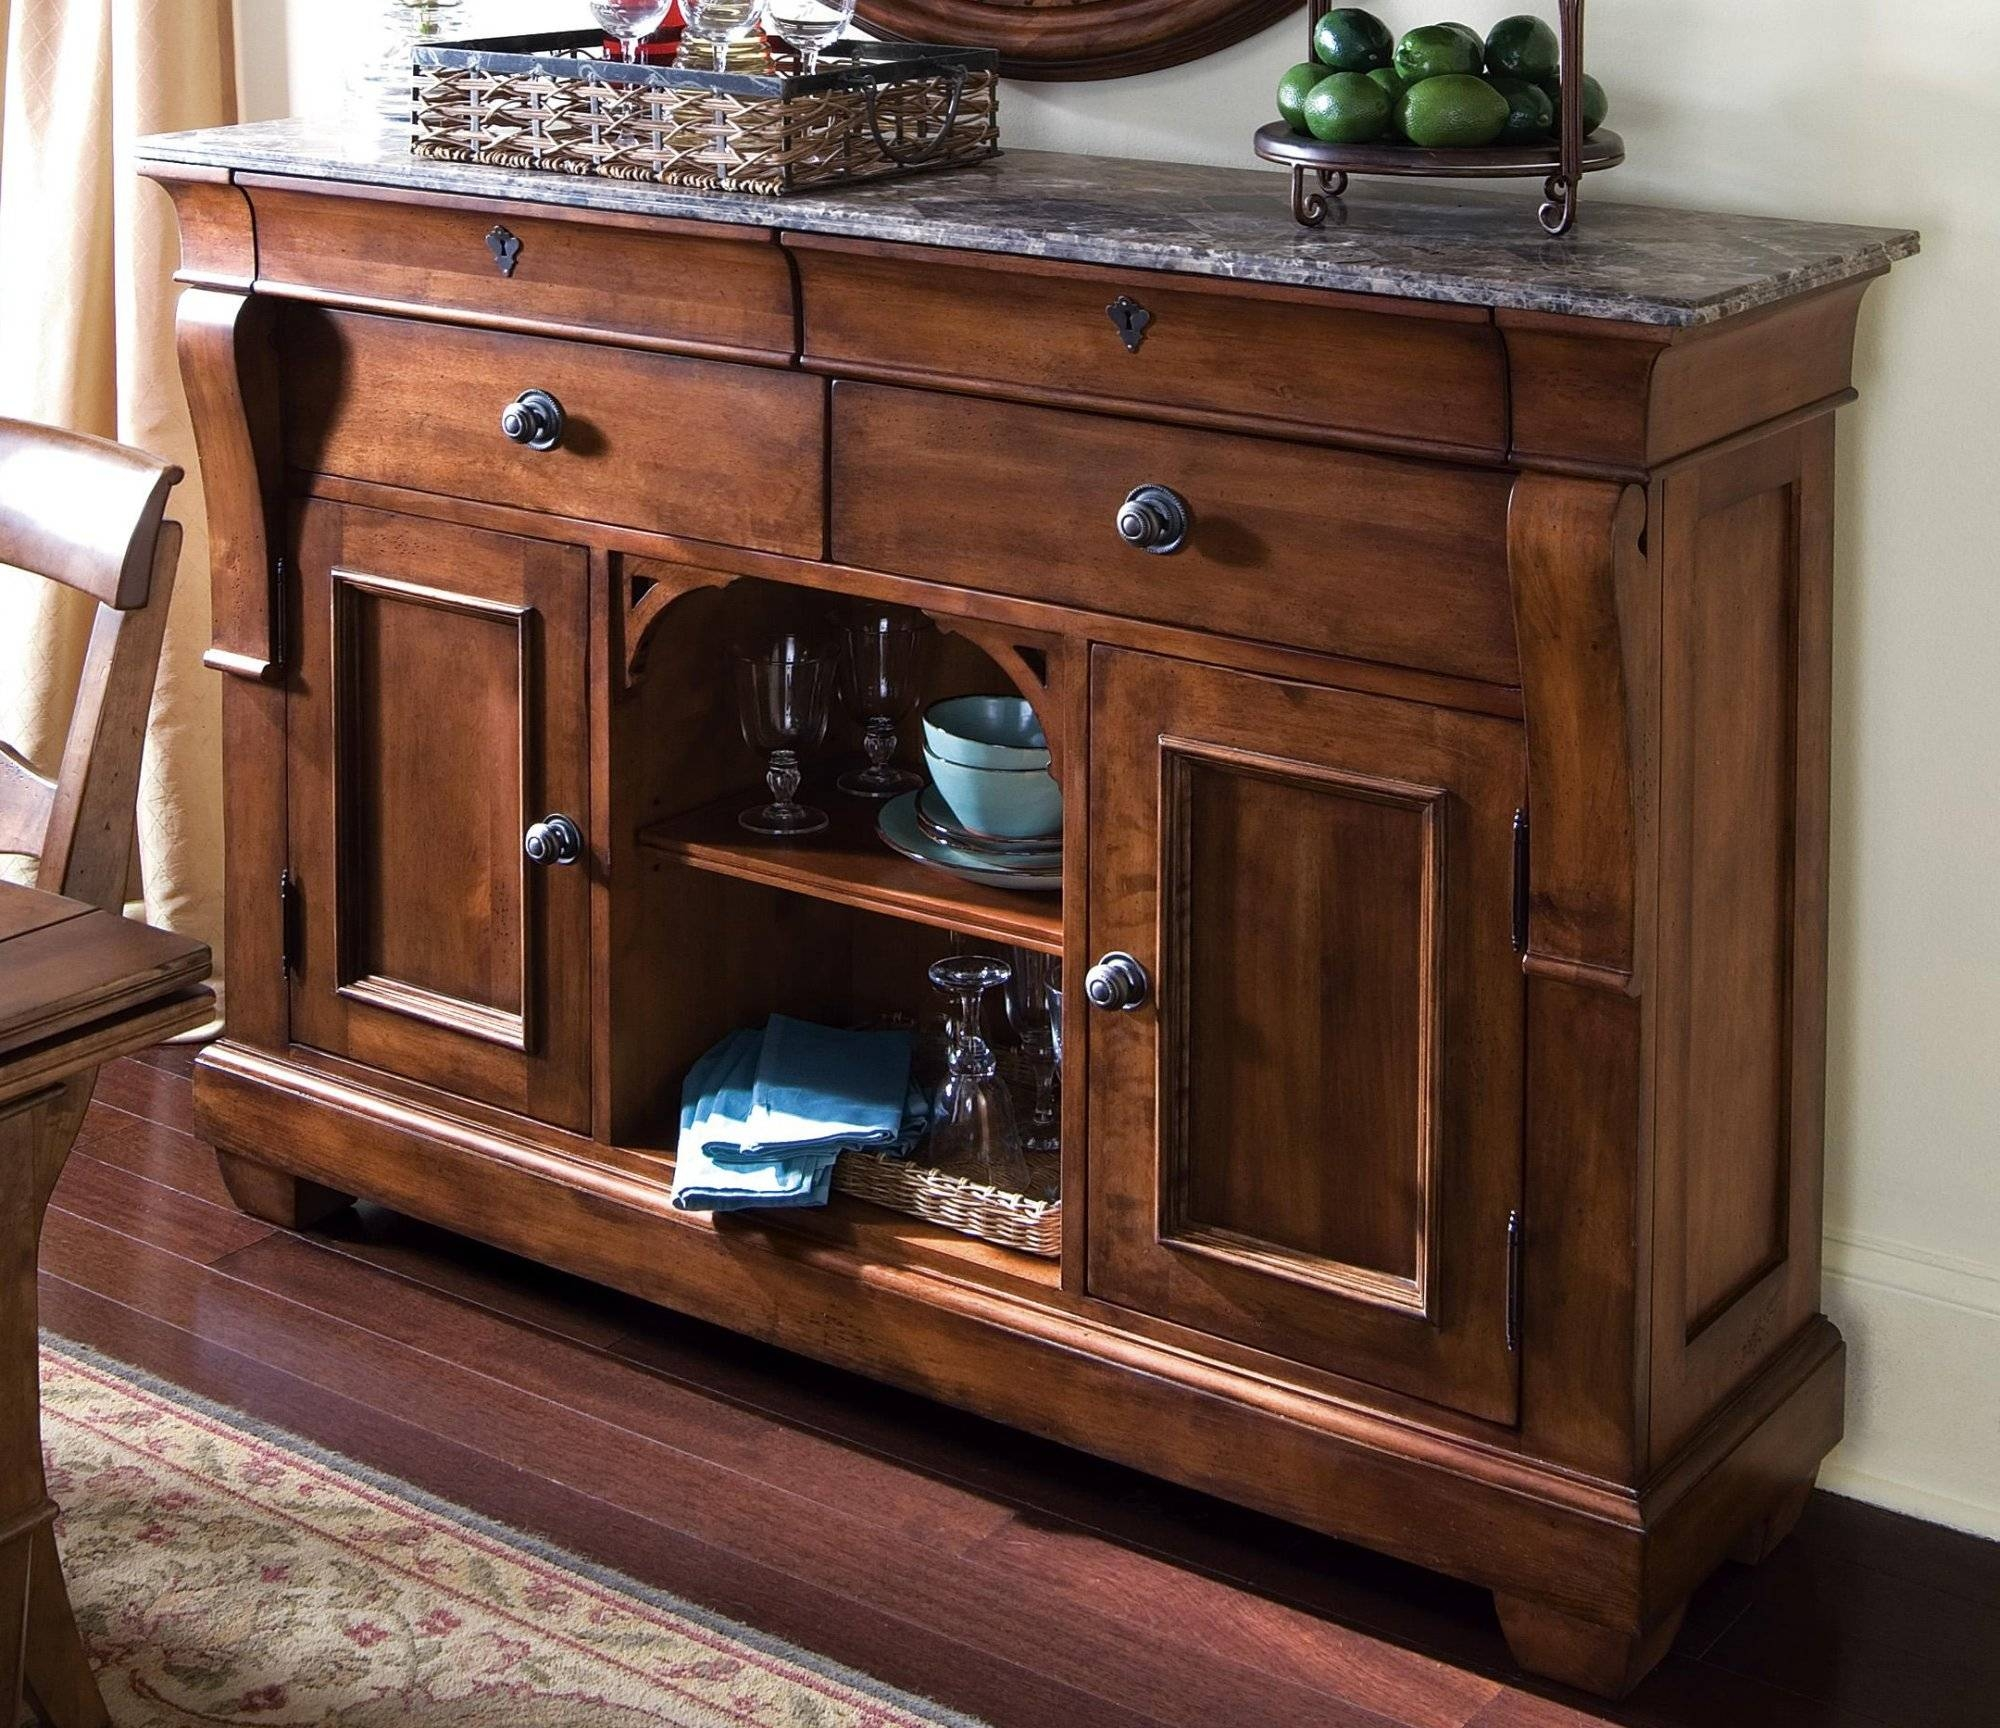 Tuscano Sideboard W/ Marble Top pertaining to Sideboards With Marble Tops (Image 13 of 15)